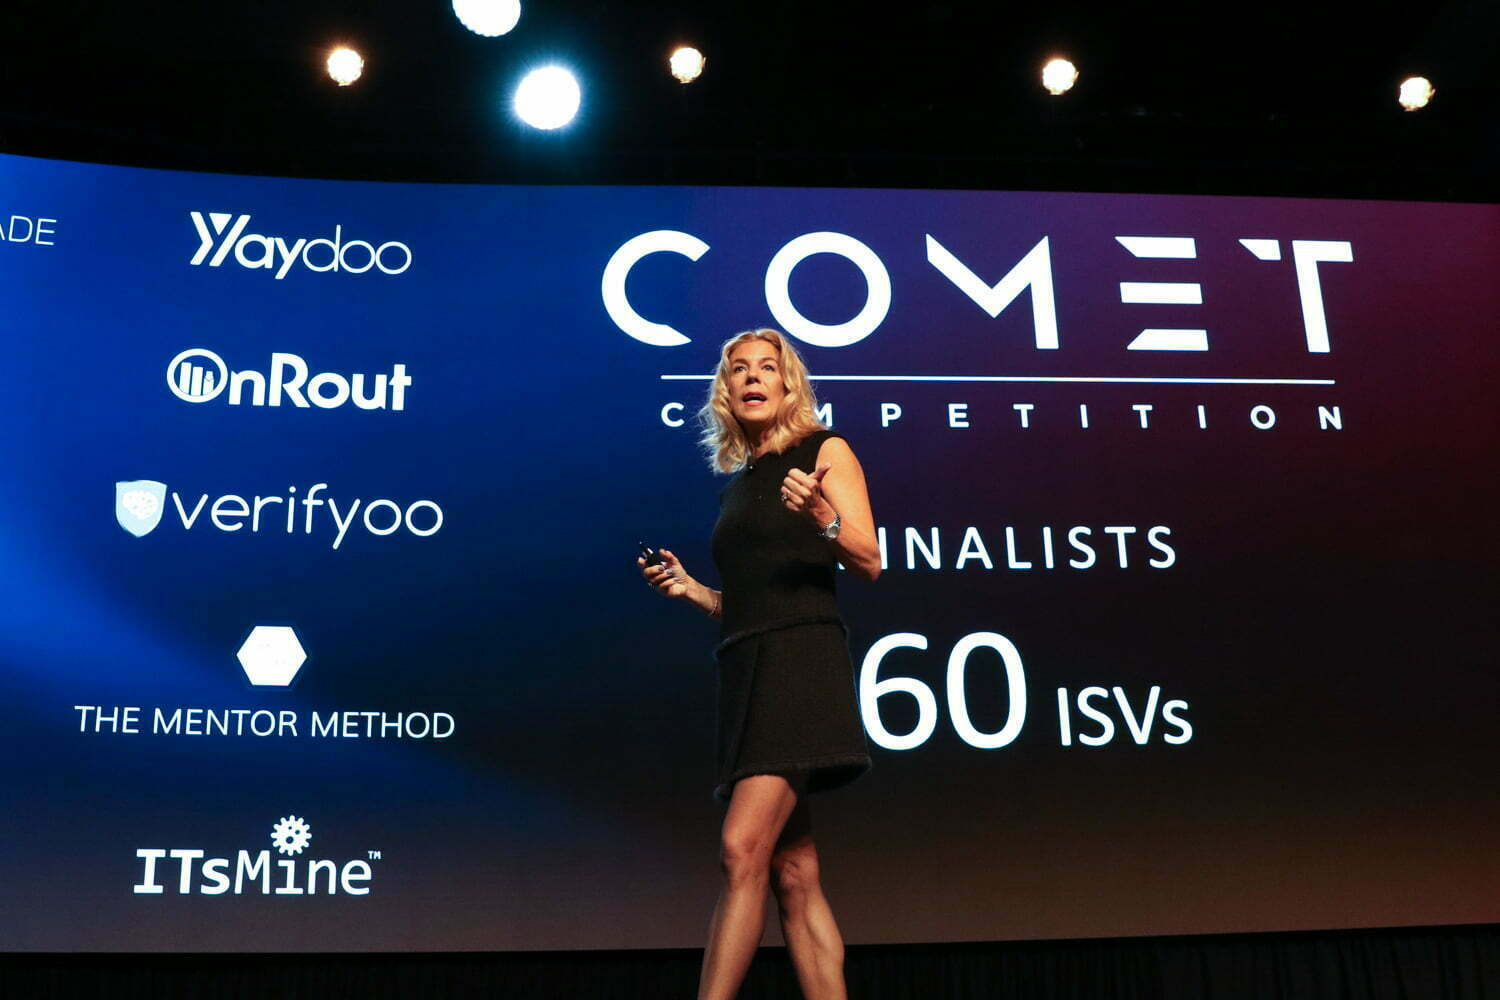 Compete with your Benelux software business for $1M equity-free prize money